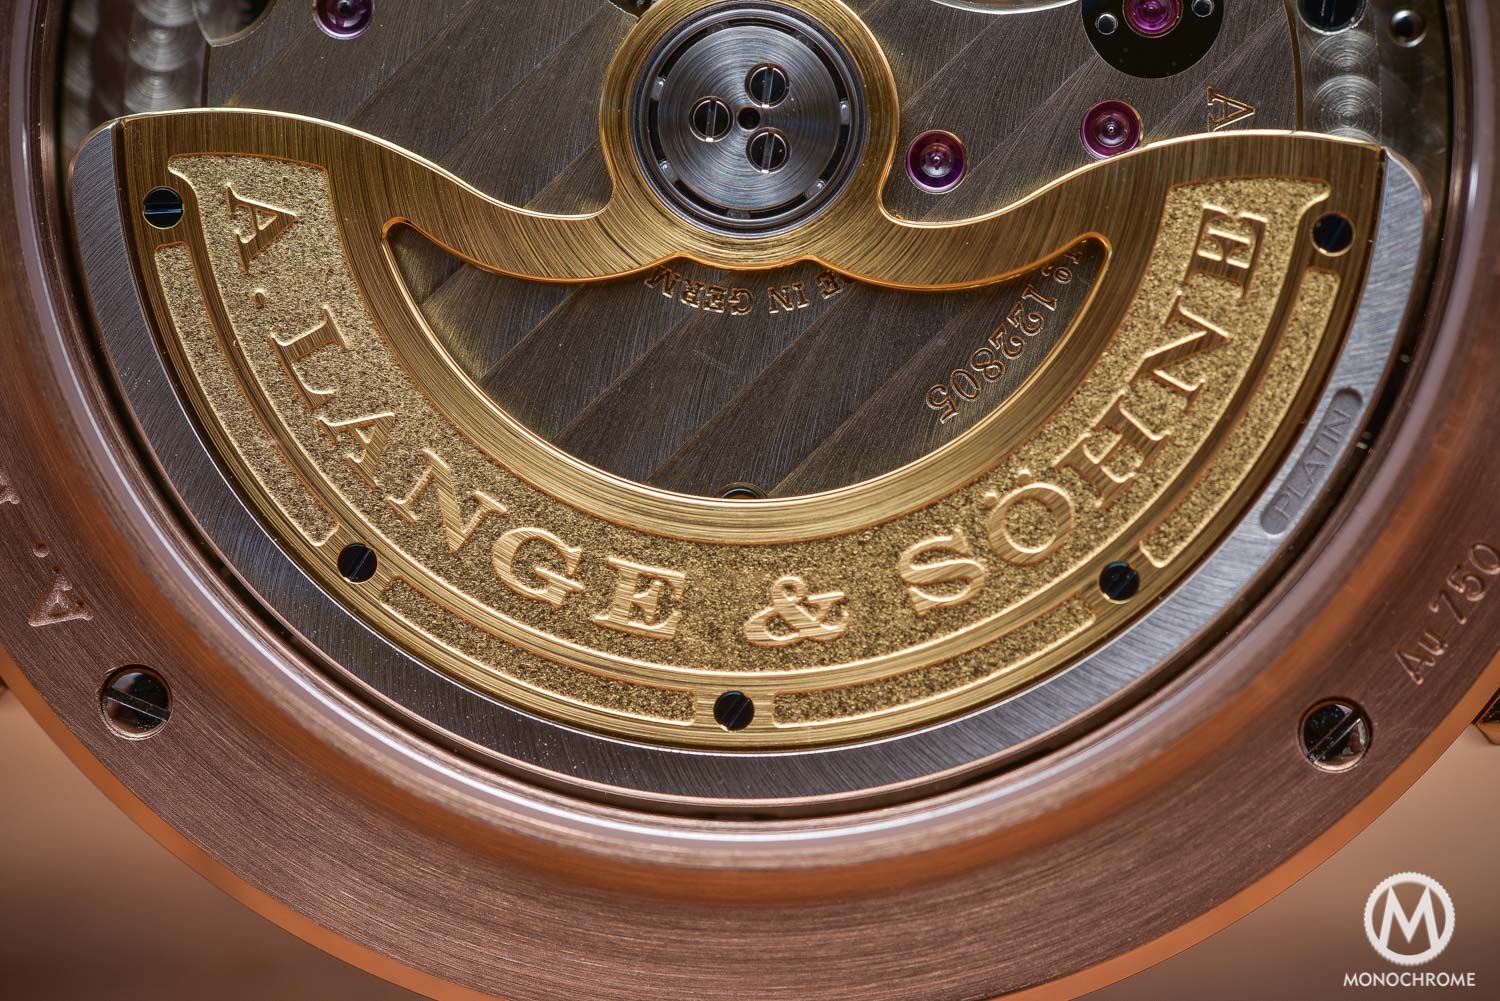 a-lange-sohne-saxonia-moon-phase-2016-review-15